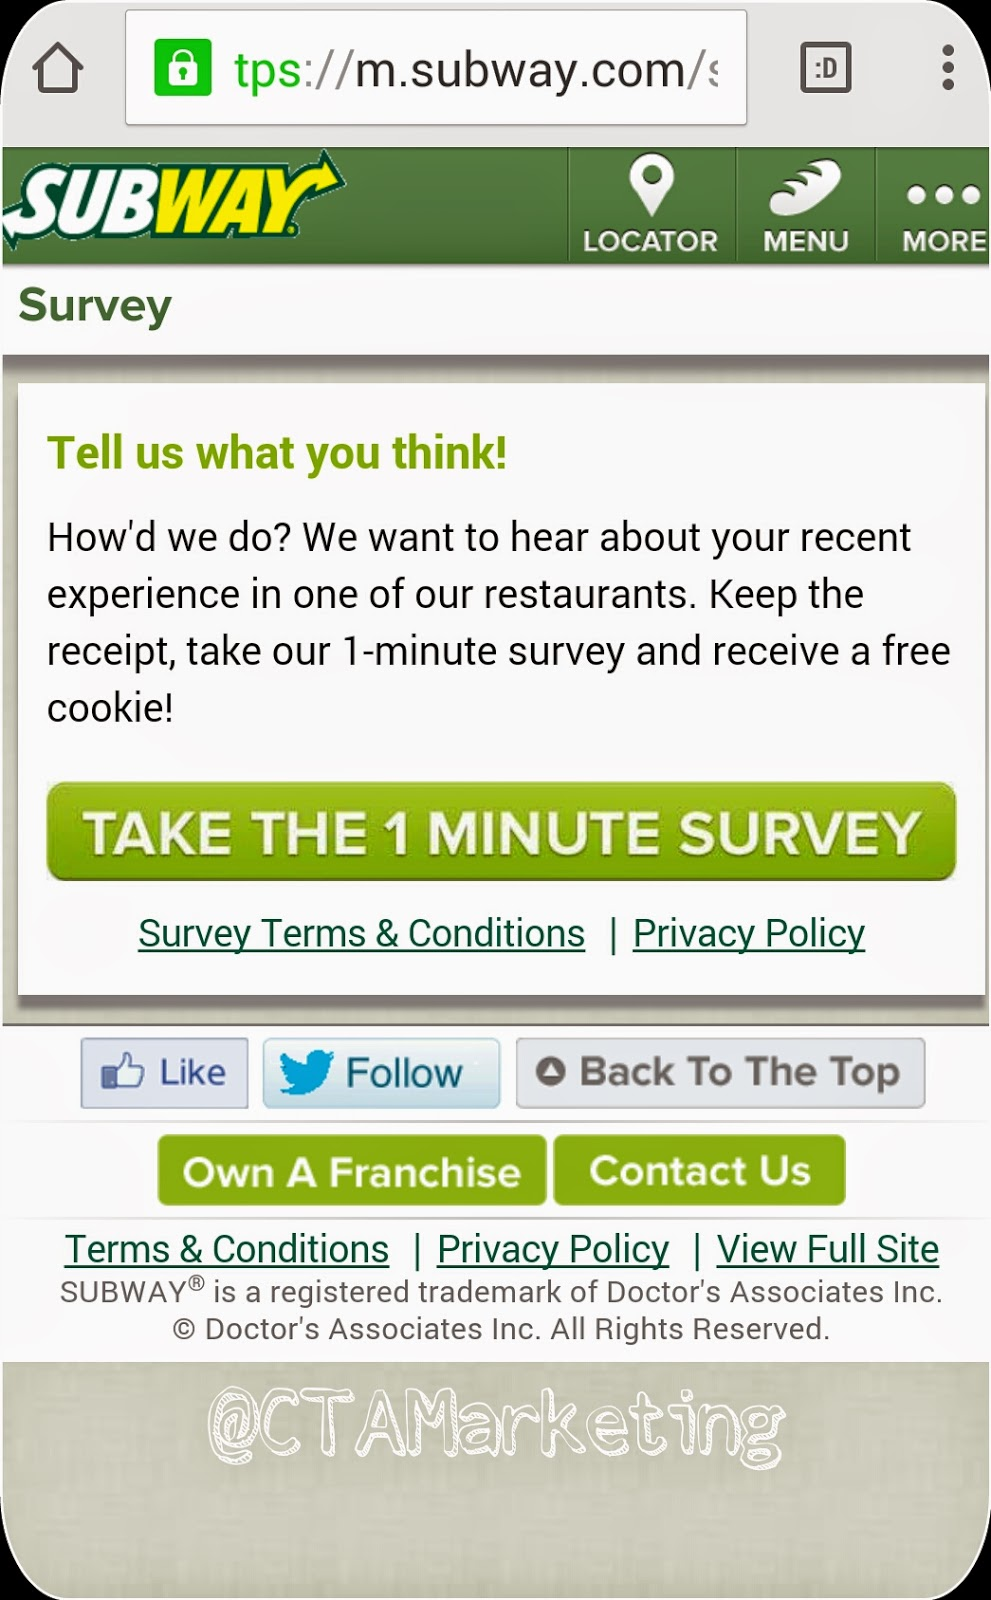 Hey folks, I have been using OnGo survey app on iOS for a while now and have made $ so far. There is an option to enter Survey code but I haven't got in my email. Any help is appreciated.